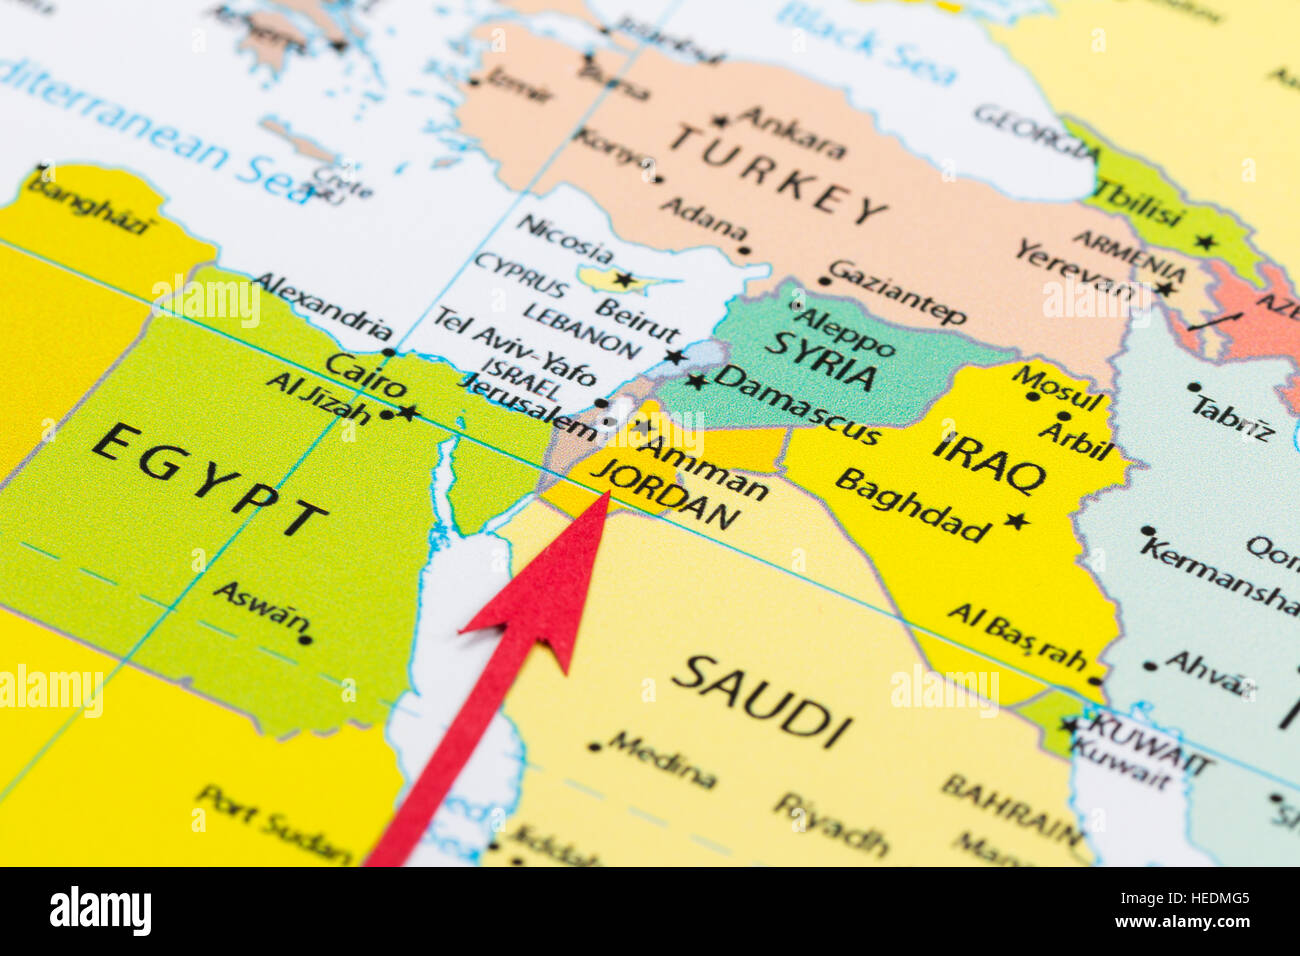 Red Arrow Pointing Jordan On The Map Of Asia Continent Stock Photo - What continent is syria in